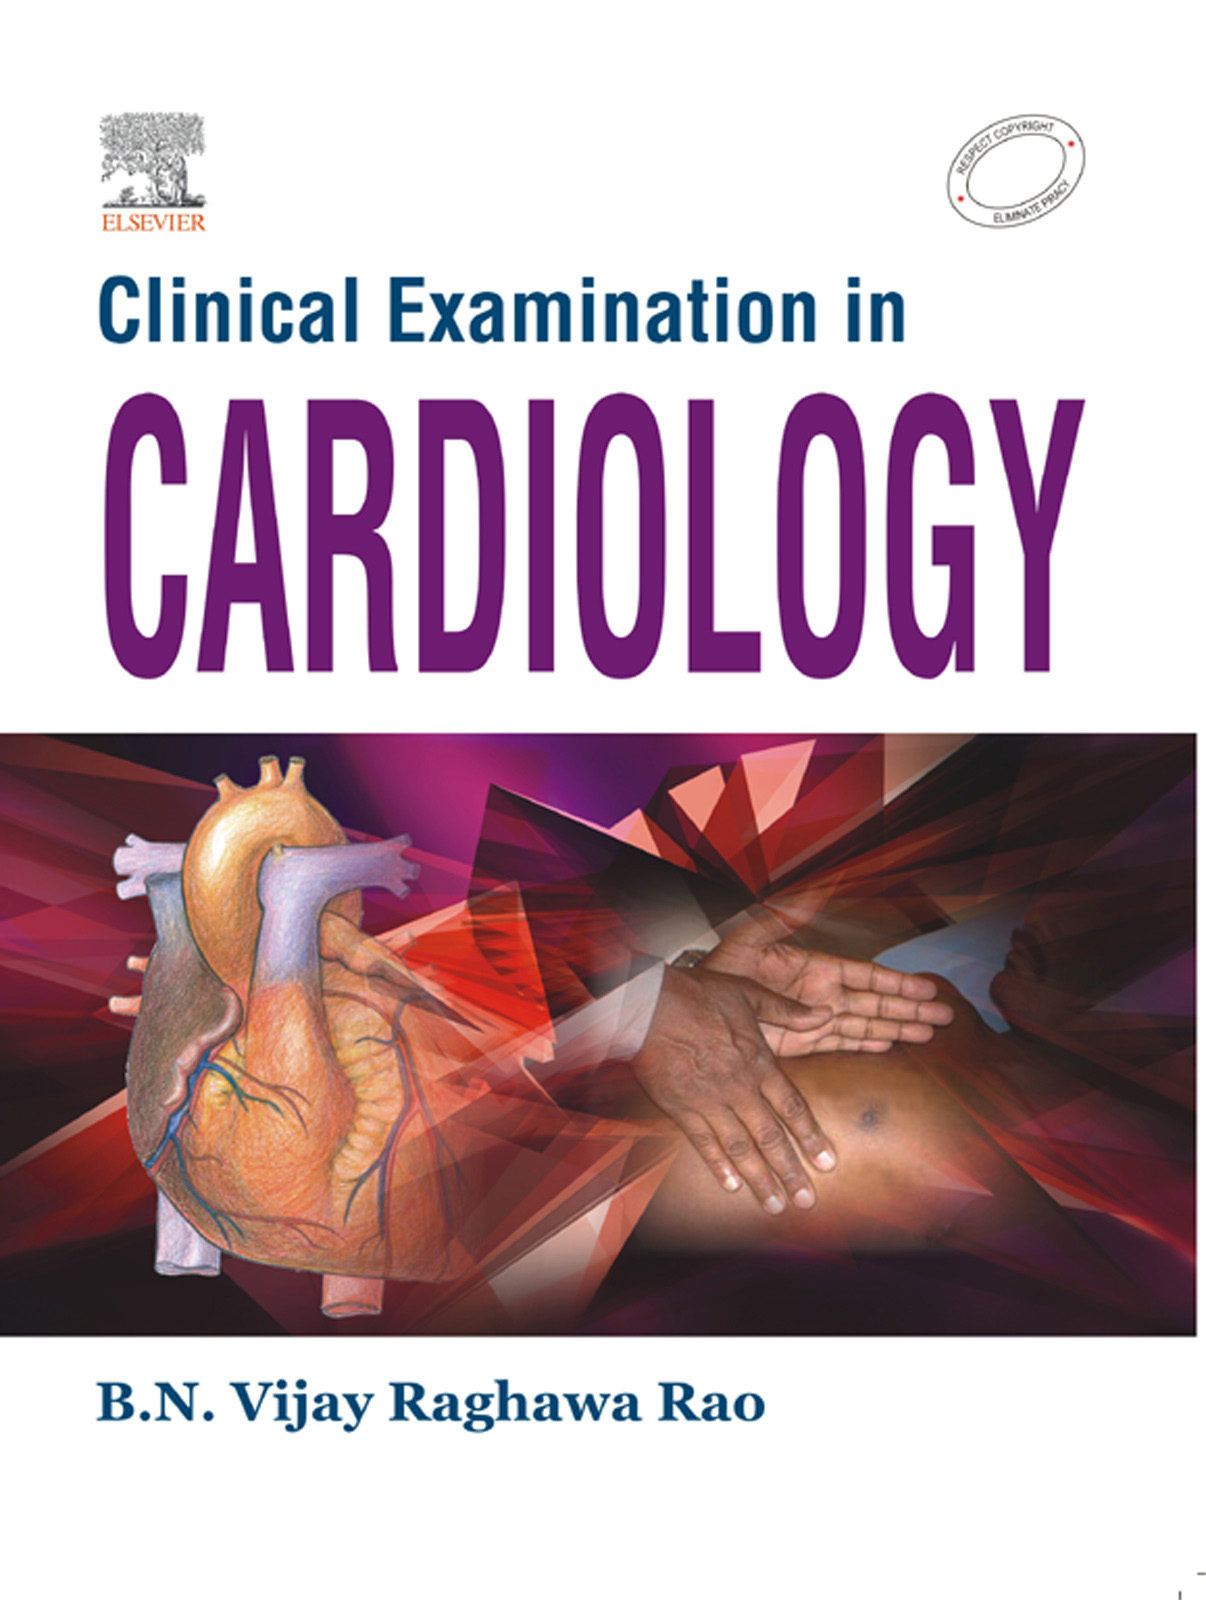 Clinical examination download macleods ebook